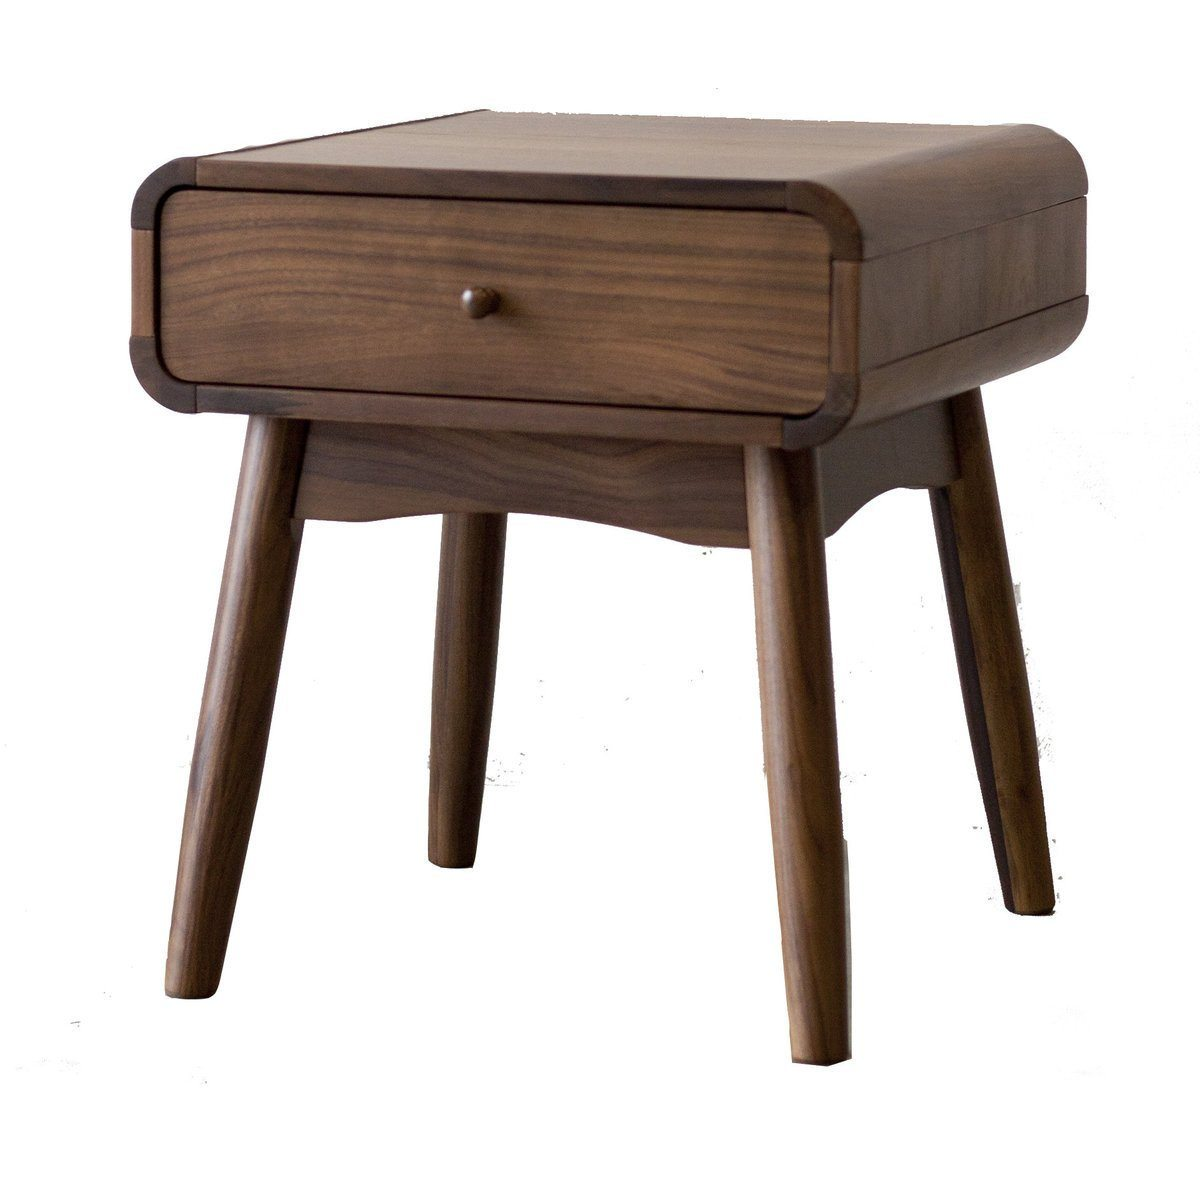 Solid Walnut Hardwood Nighstand Call us and get up to 25% off this item. 403.460.8114 nightstands LH